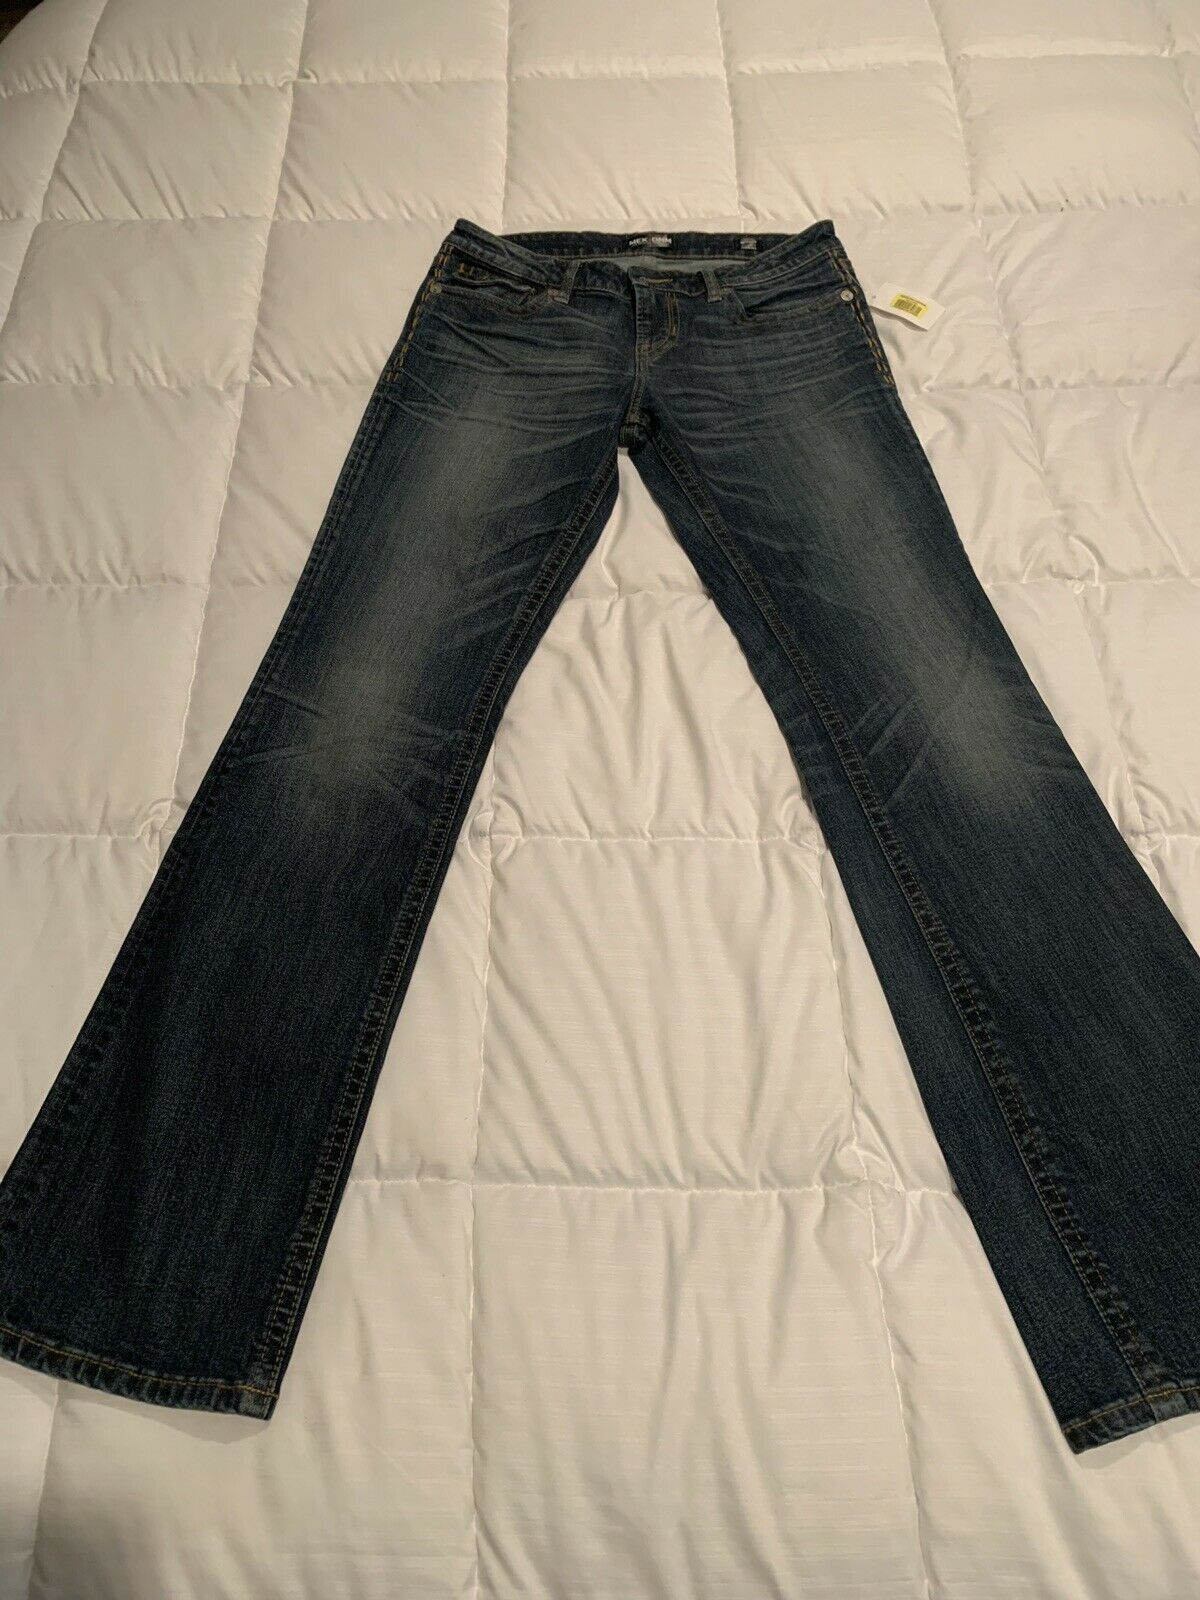 MEK DNM Womens Size 29 Jeans Wyatt 34 Long Slim Boot